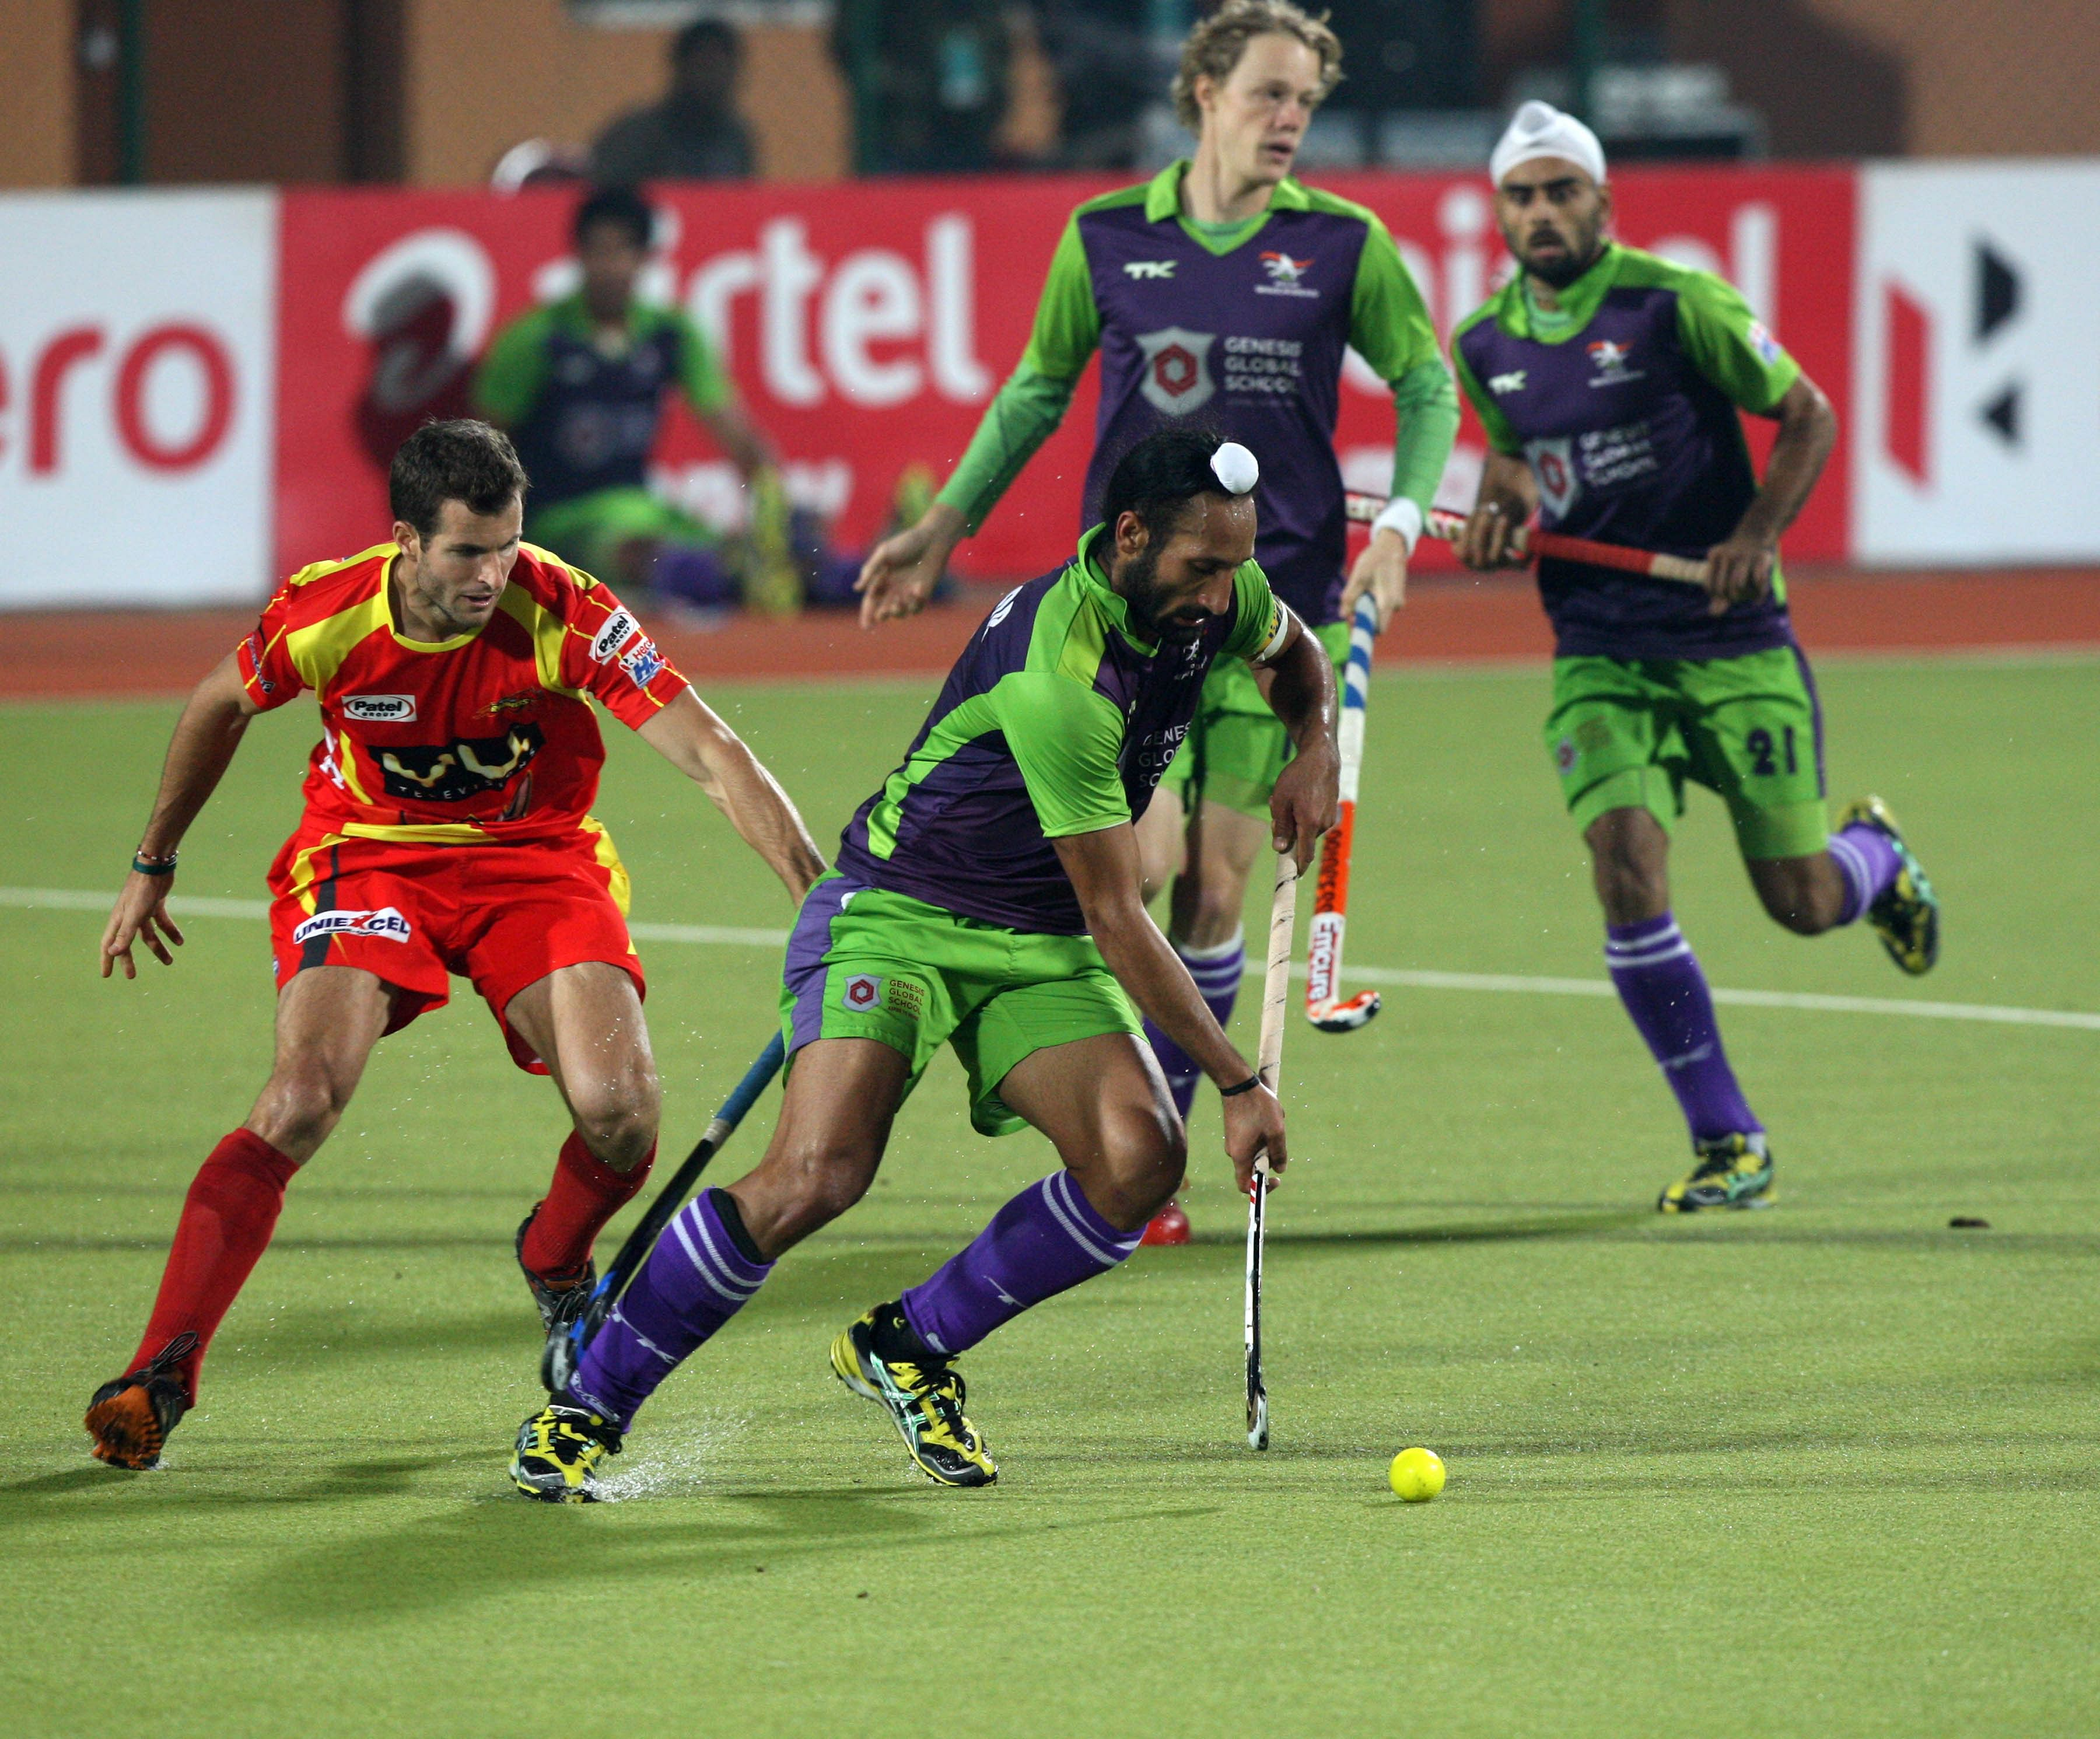 Delhi Waveriders seal a place in Semi-Finals with a win over Ranchi Rhinos